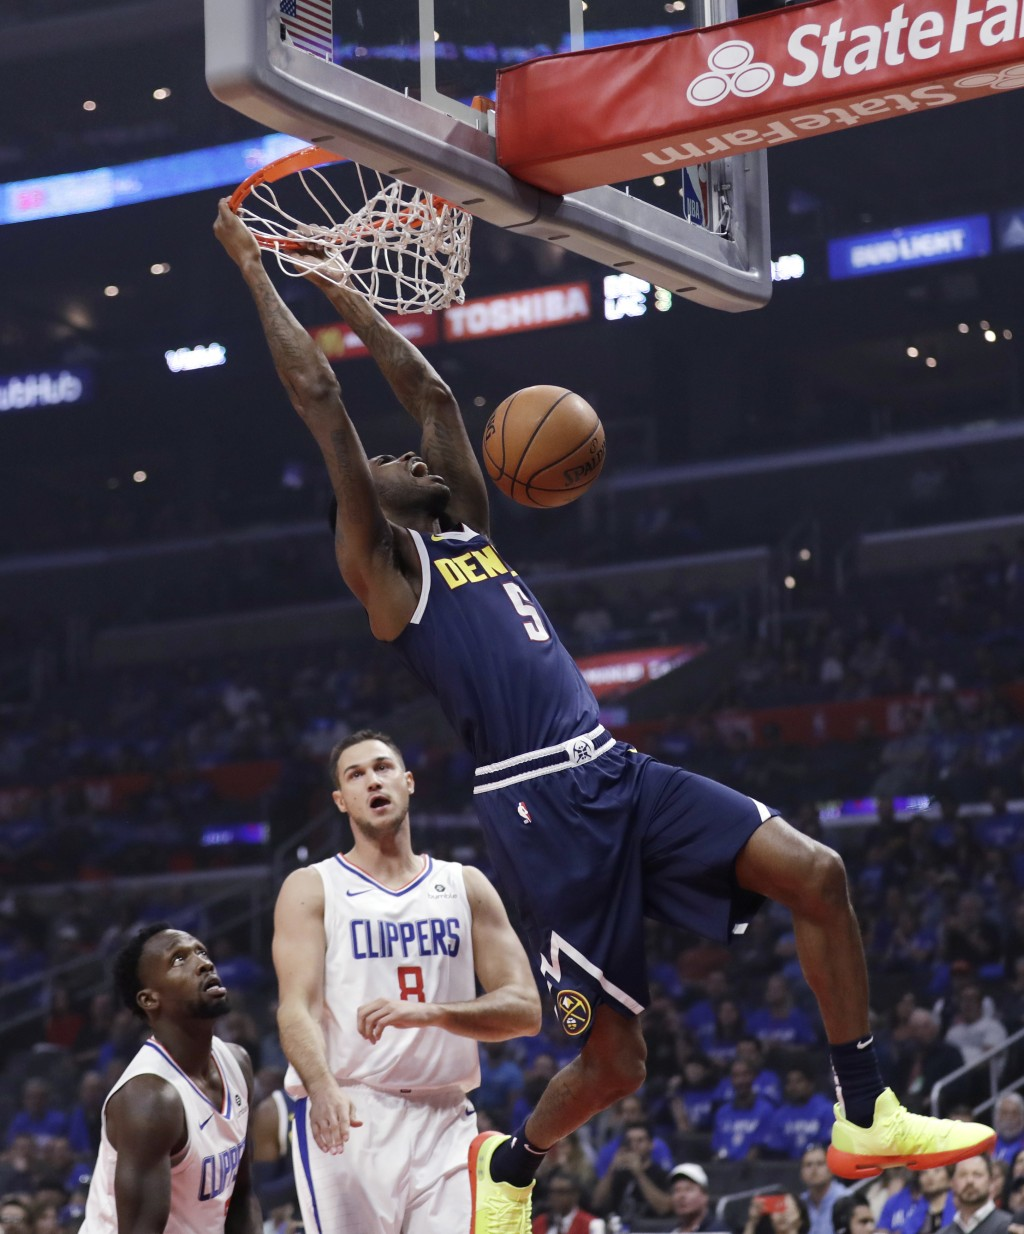 Nuggets Next Game: Nuggets Rally In Fourth To Defeat Clippers In...